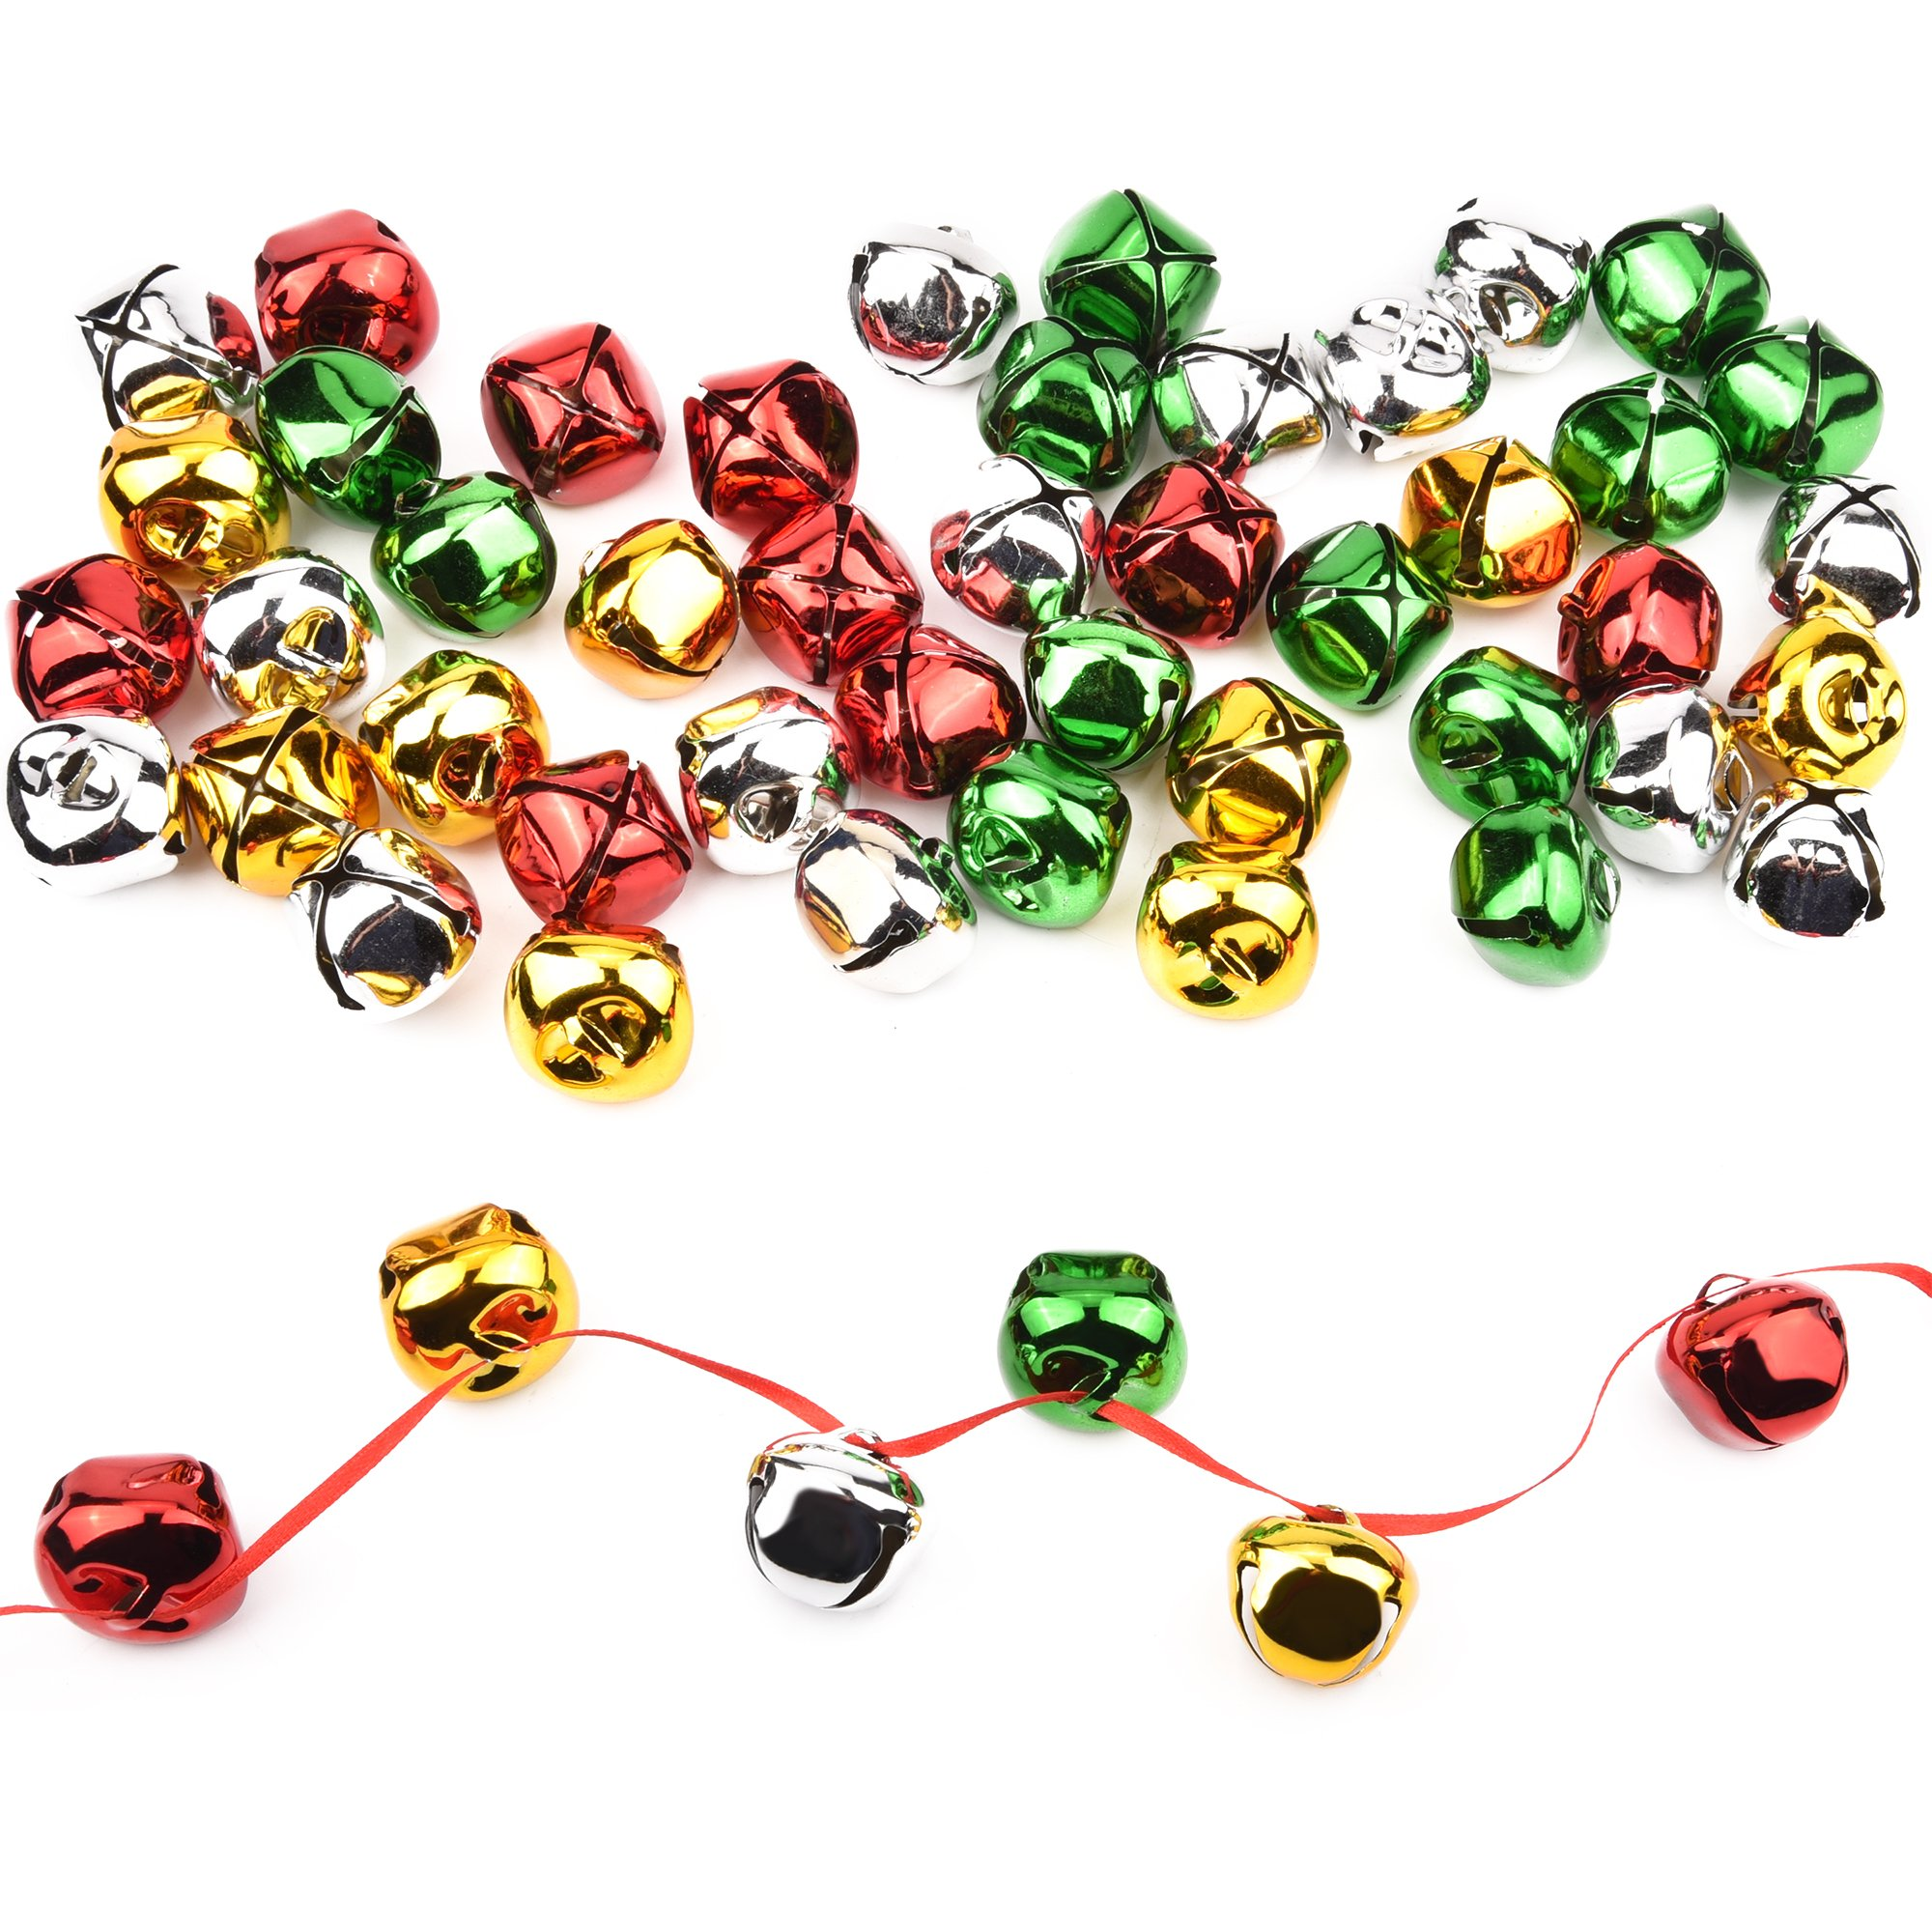 1.18 Inch 50 Pack Sweet Christmas jingle bells craft kits and supplies DIY big jingle bell for your pets and your family(30mm)